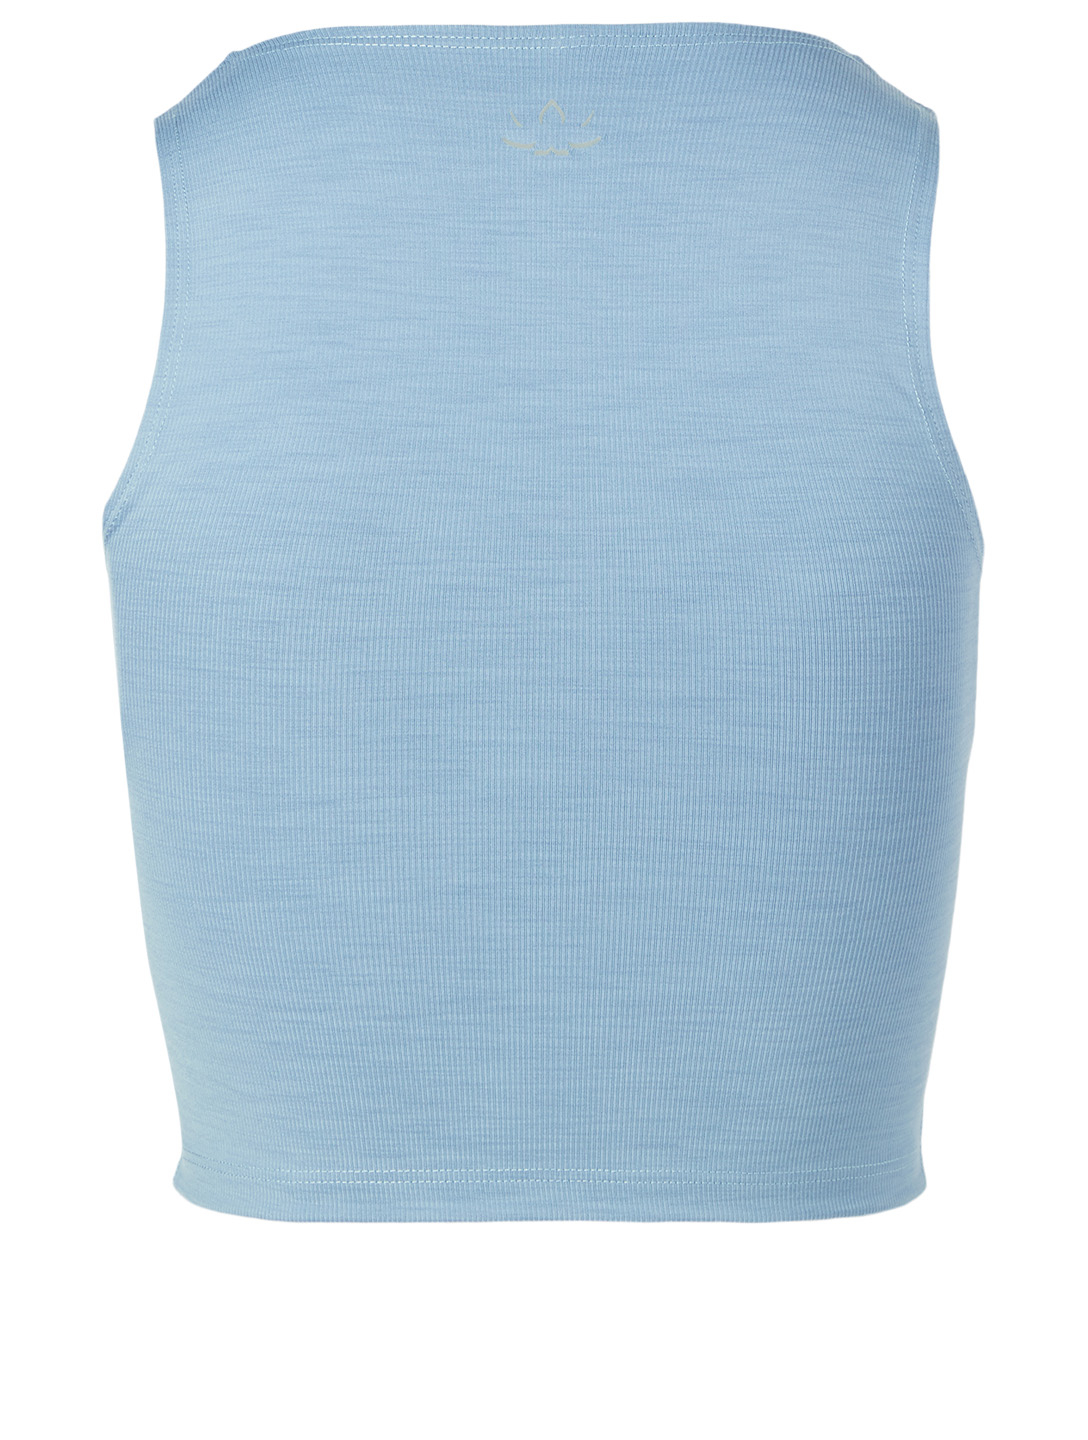 BEYOND YOGA Heather Rib Square Neck Cropped Tank Top Women's Blue